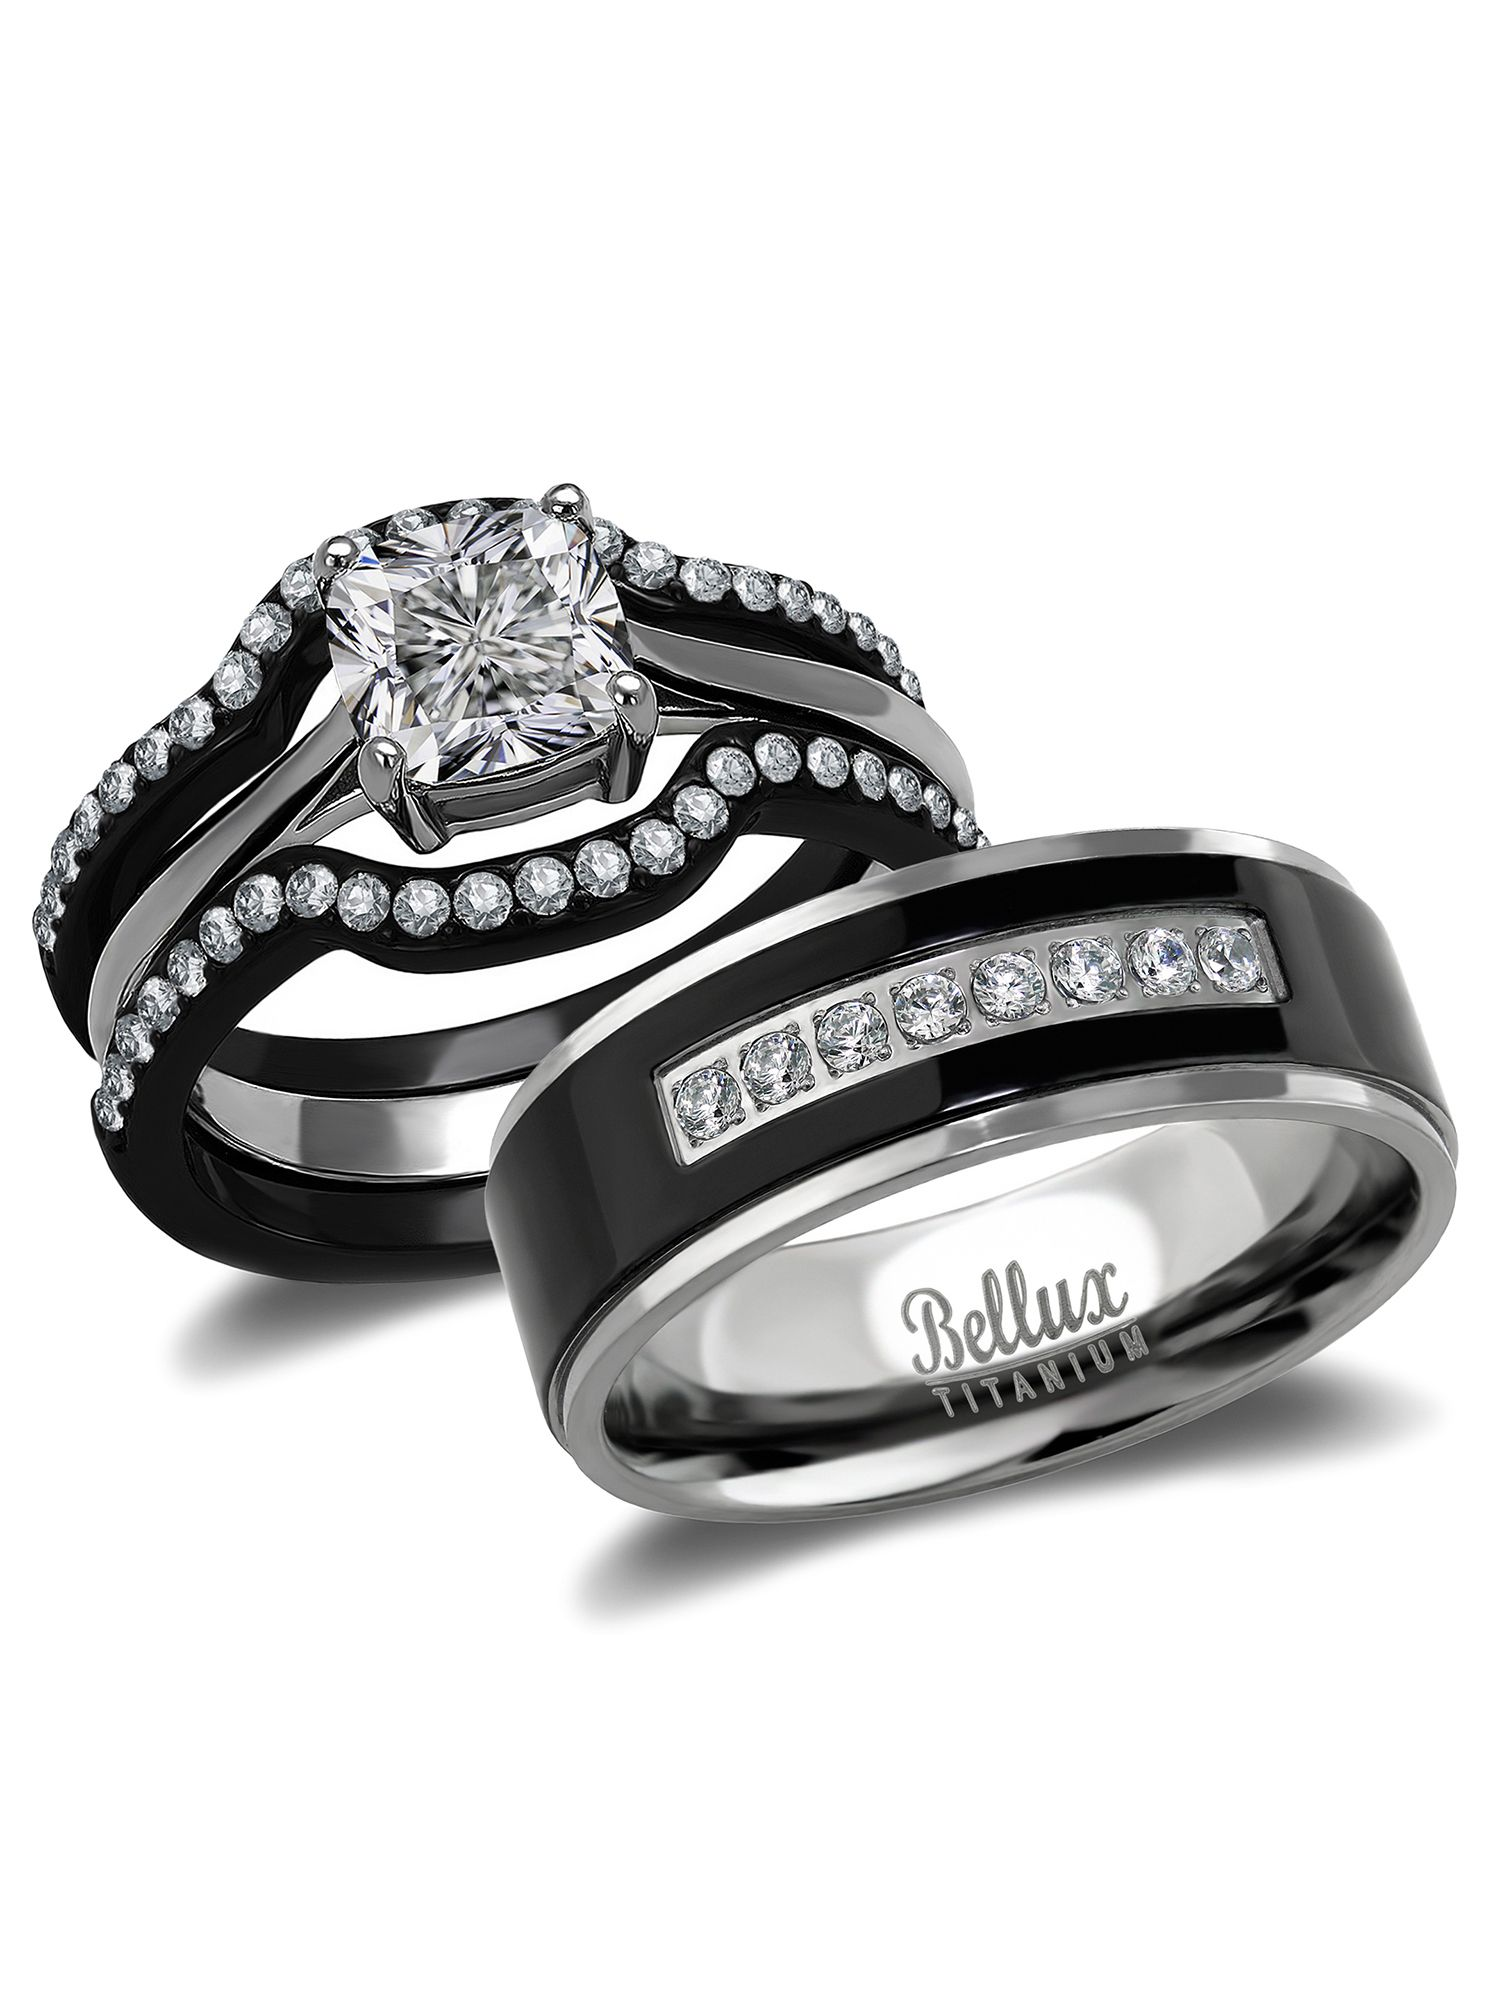 Bellux Style His And Hers Wedding Ring Sets Black Stainless Steel And Titanium Bridal Set Walmart Com In 2021 Titanium Wedding Rings Steel Wedding Ring Wedding Ring Sets